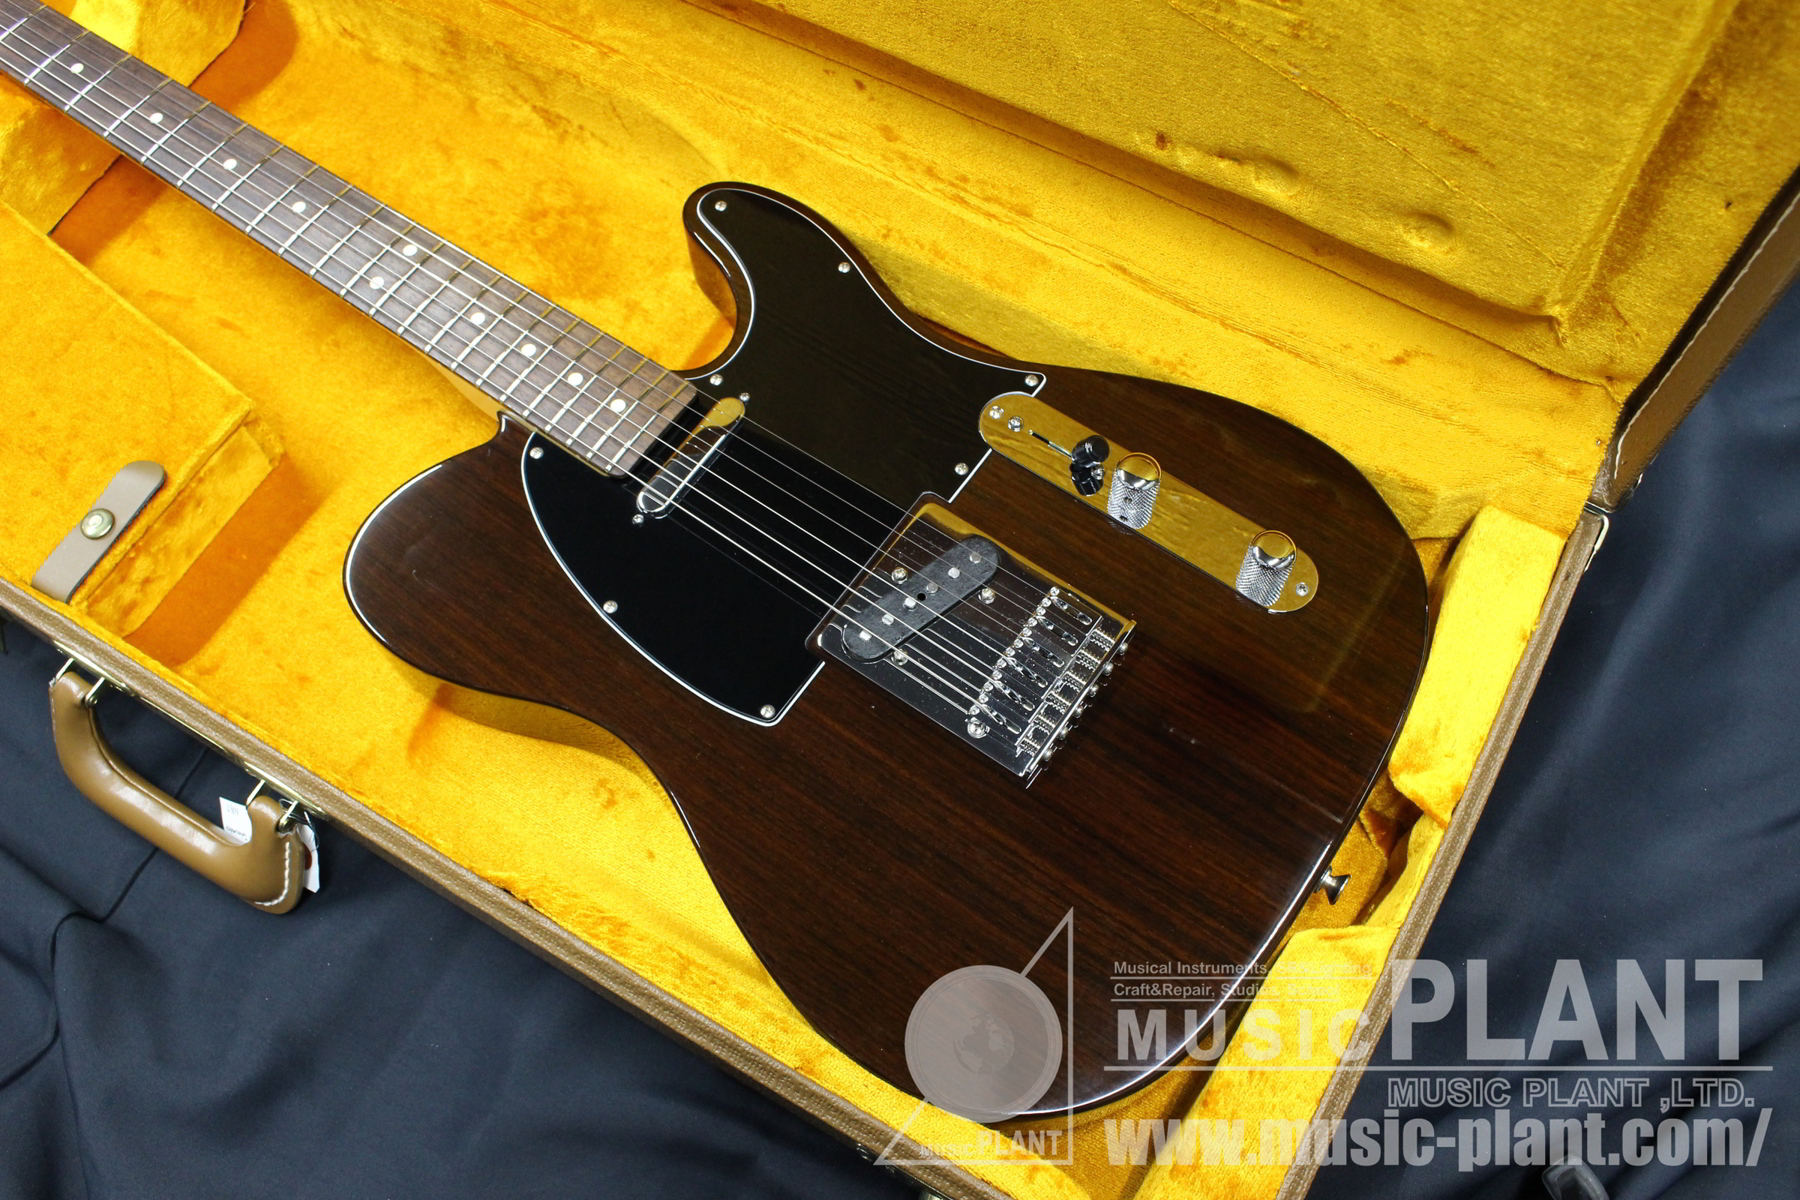 2012 Limited 60th Anniversary Tele-bration Lite Rosewood Telecaster追加画像